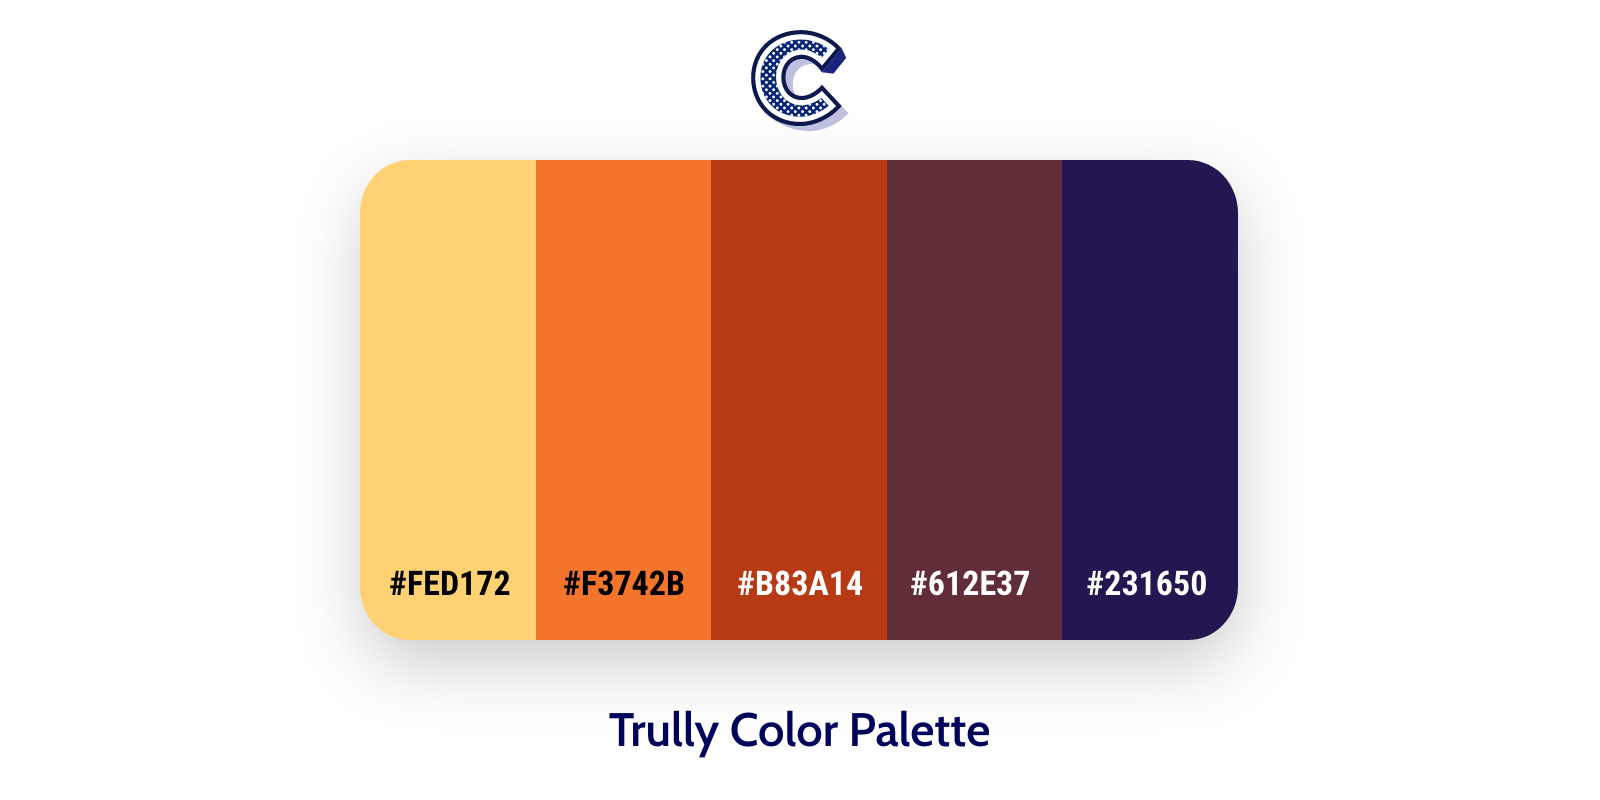 the featured image of trully color palette